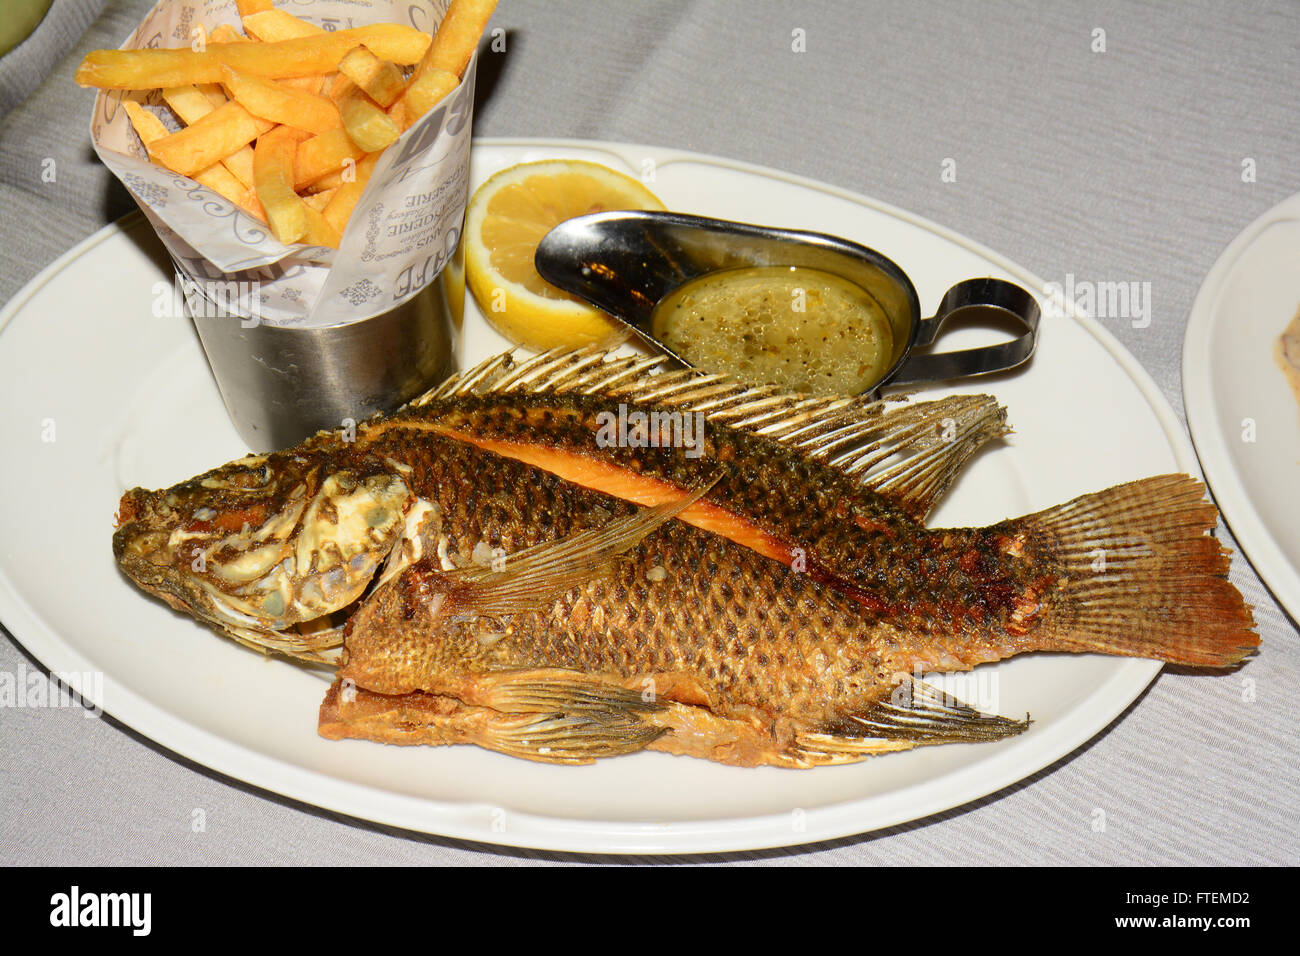 Fish Gravy and French fries - Stock Image